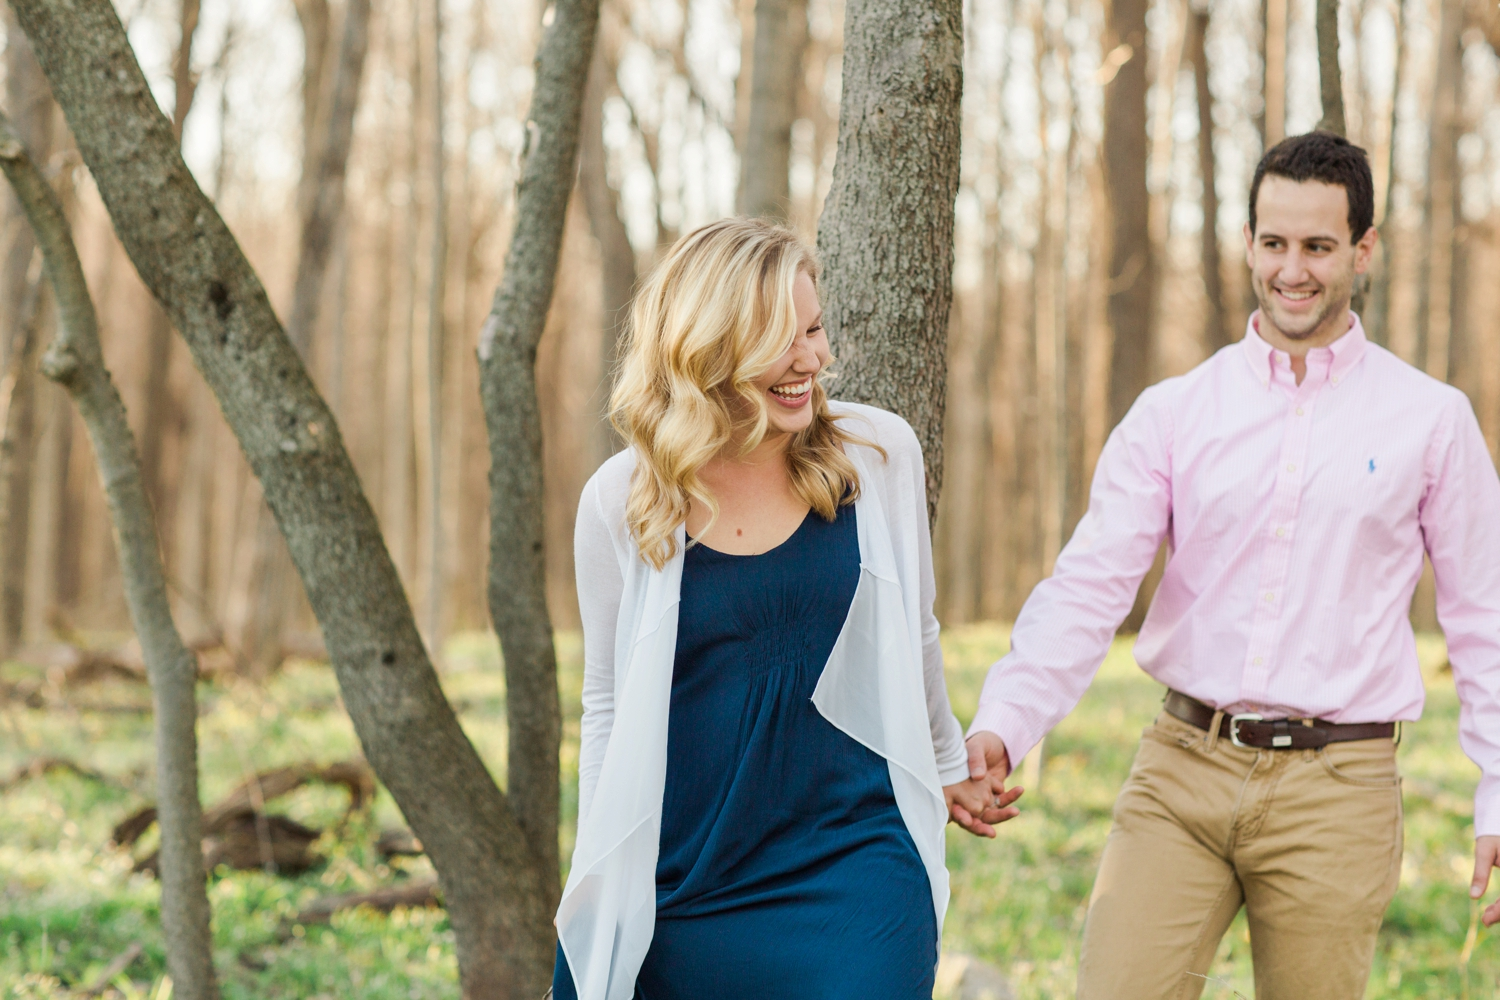 indianapolis_wedding_photographer_golden_hour_engagement_chloe_luka_photography_6105.jpg